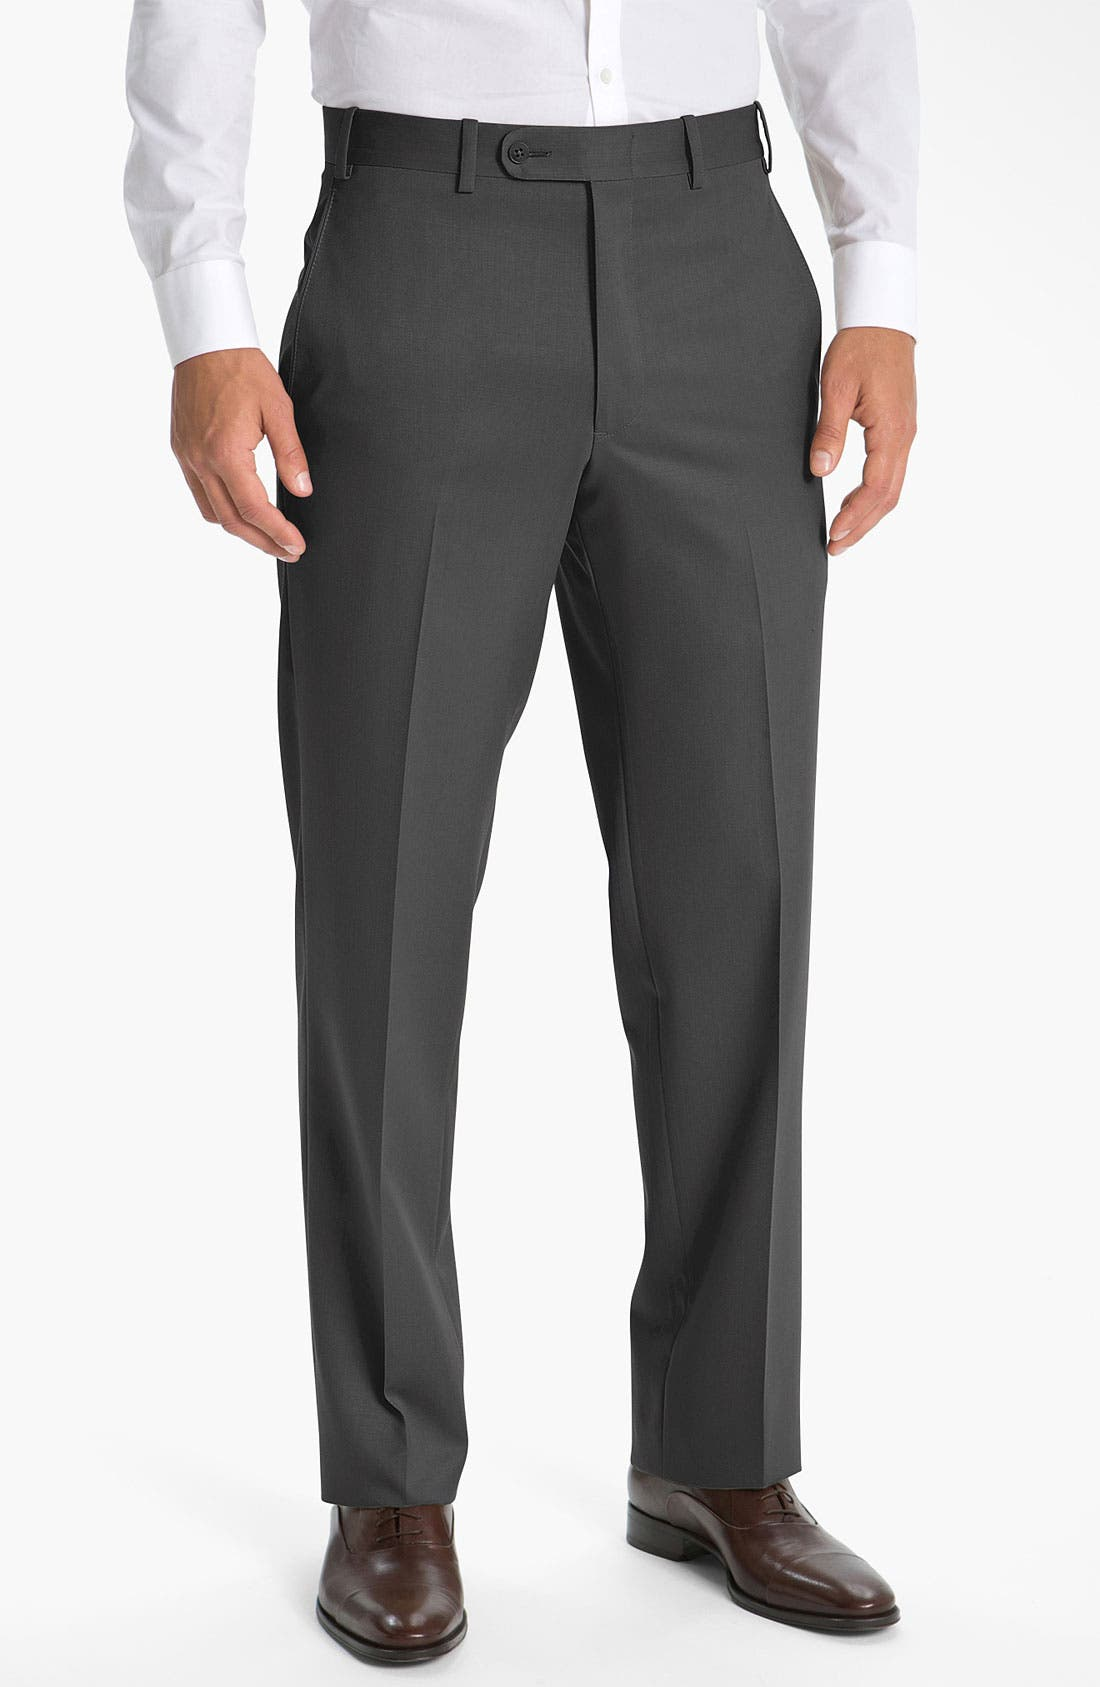 Main Image - JB Britches Pre-Hemmed Flat Front Trousers